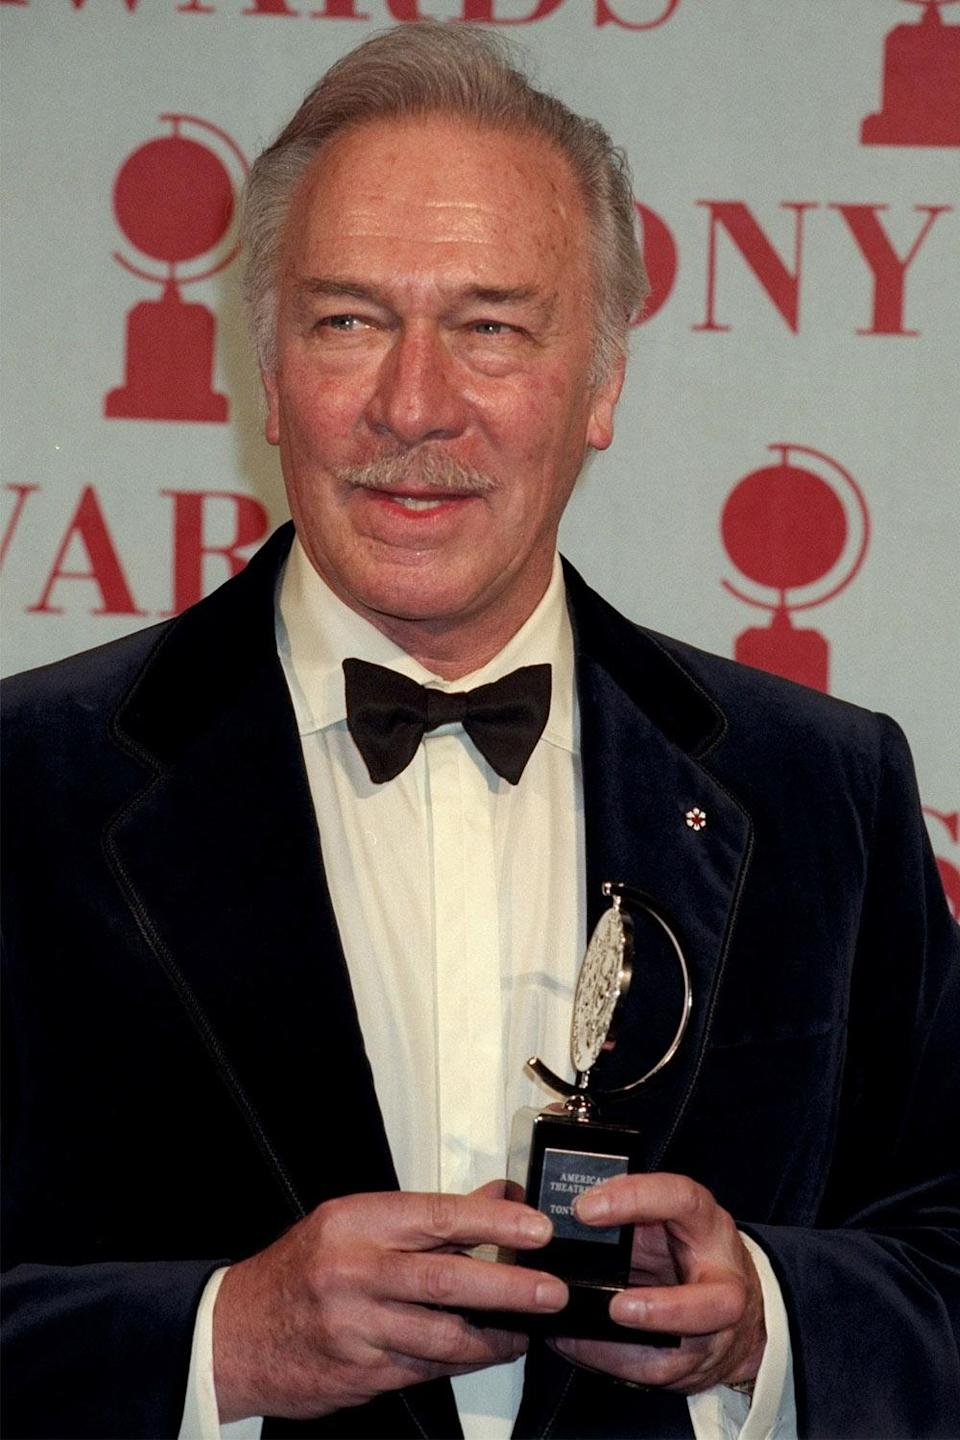 <p>Between 1959 and 2007, Plummer received seven Tony Award nominations, winning for 1974's <em>J.B.</em> and 1997's <em>Barrymore</em>. Though not an EGOT, he is one of few actors to have attained the Triple Crown of Acting, winning an Academy Award, Emmy Award and Tony Award.</p>